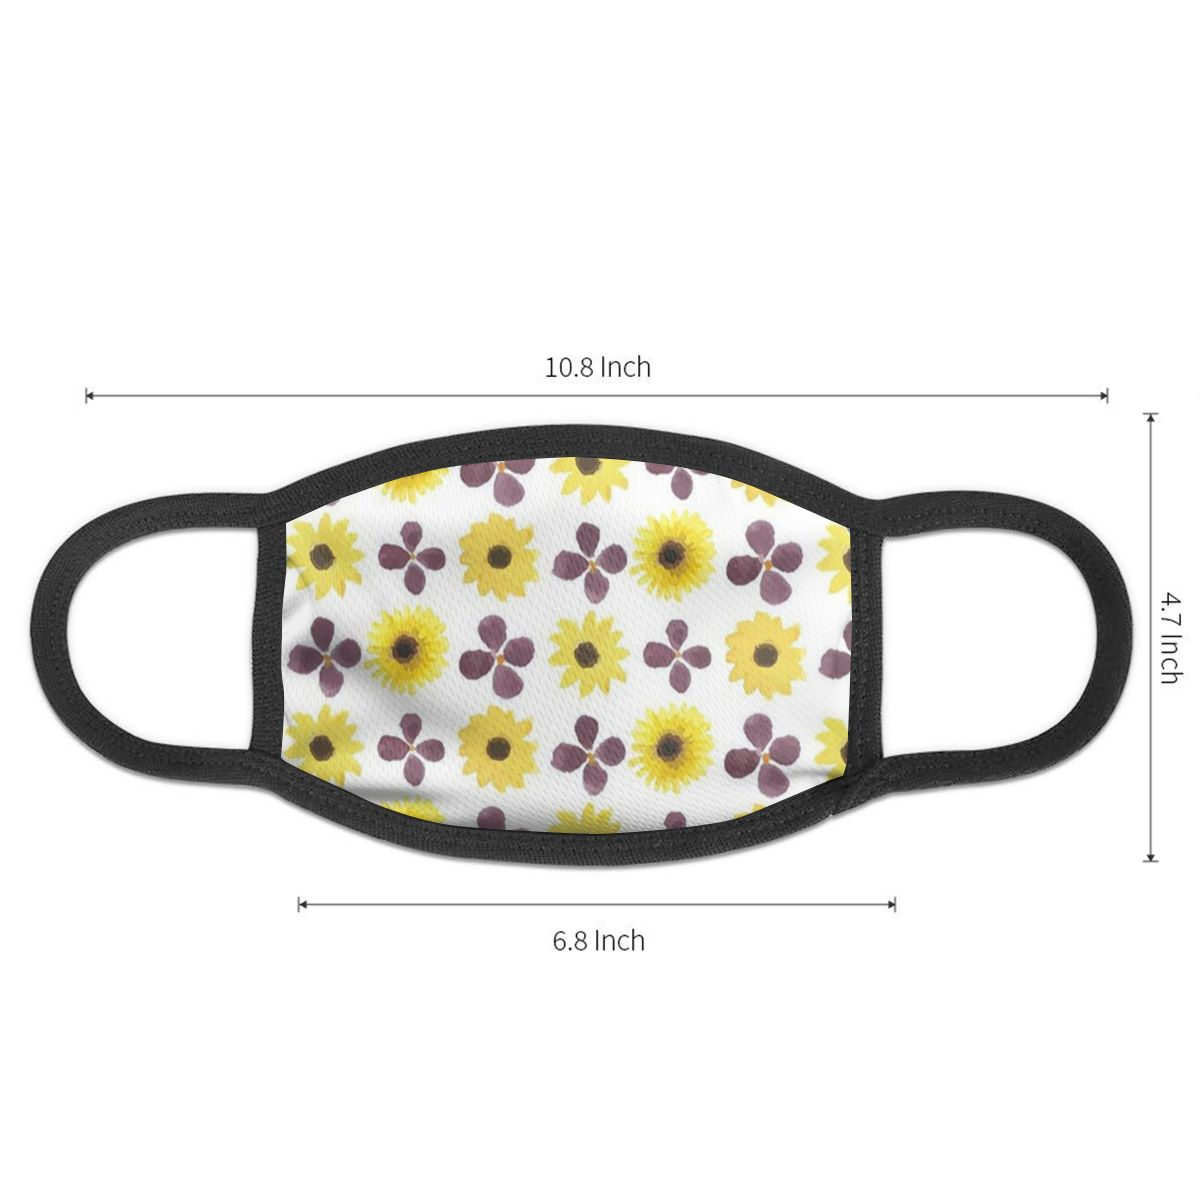 NOISYDESIGNS Cute Mouth Muffle Face Mask Unisex Sunflower Style Cover Cycling Anti Dust Facial Protective Cover Masks New